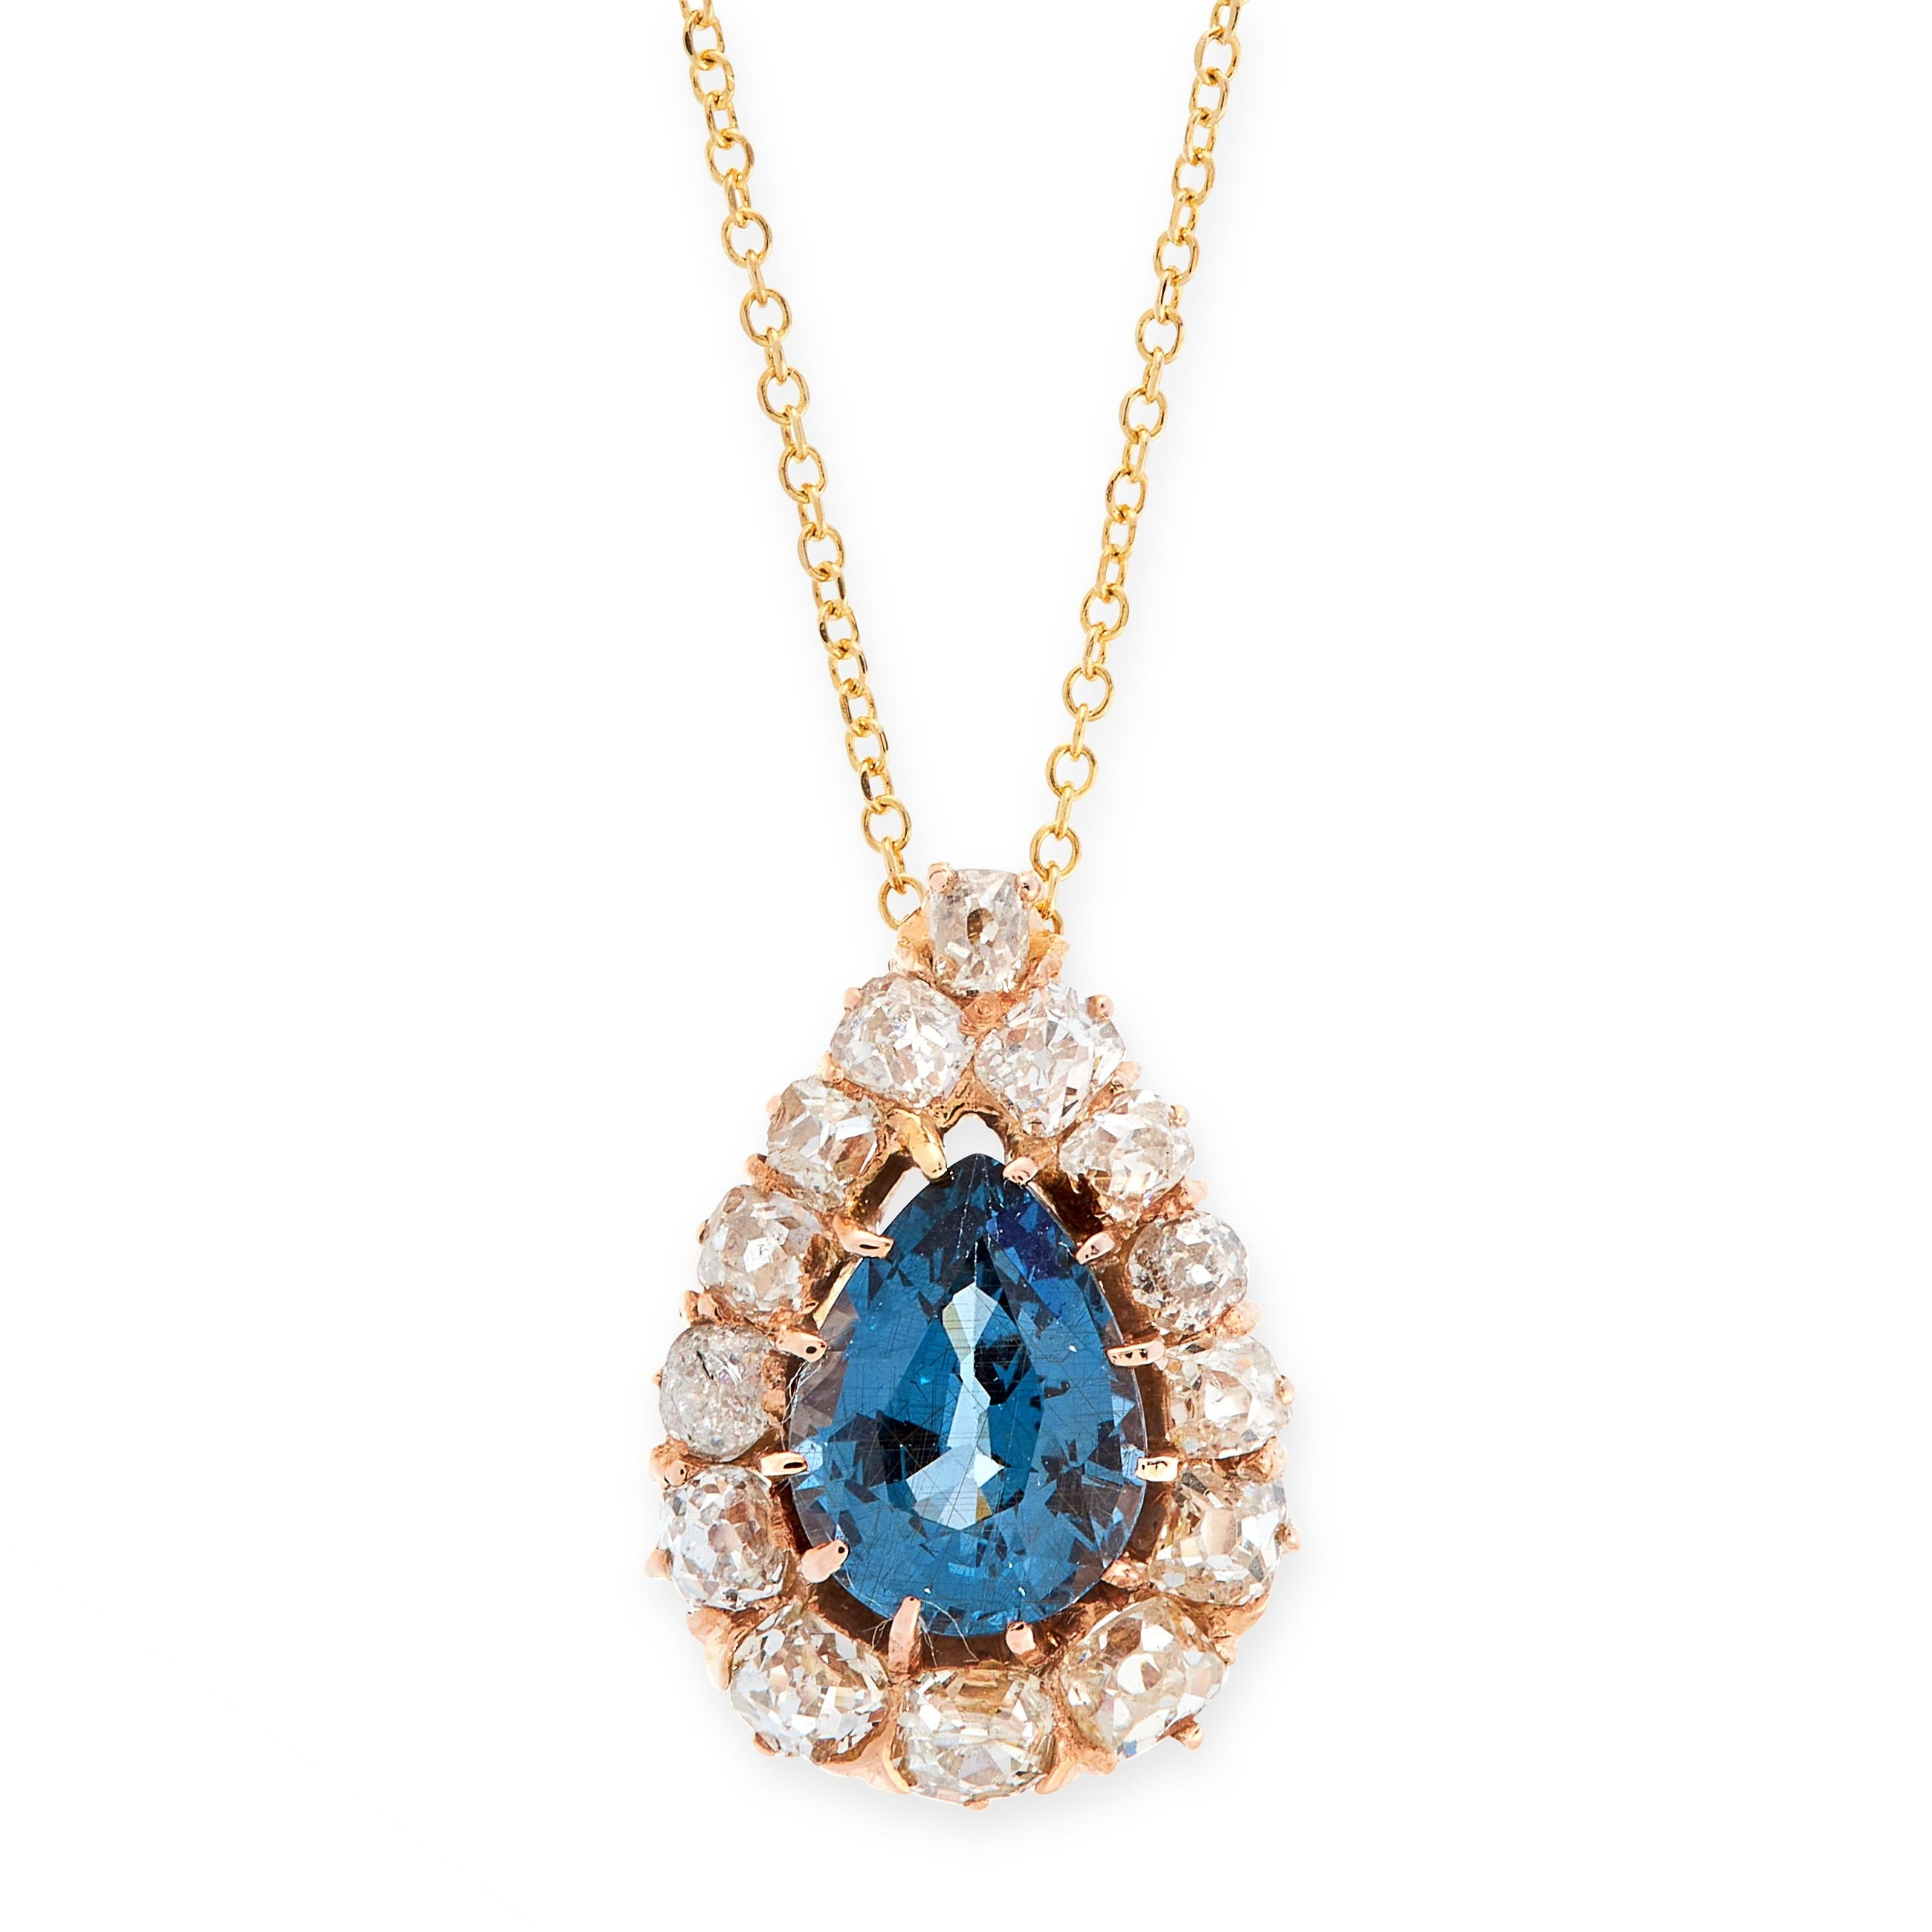 AN ANTIQUE SAPPHIRE AND DIAMOND PENDANT AND CHAIN in 18ct yellow gold, the pendant set with a pear